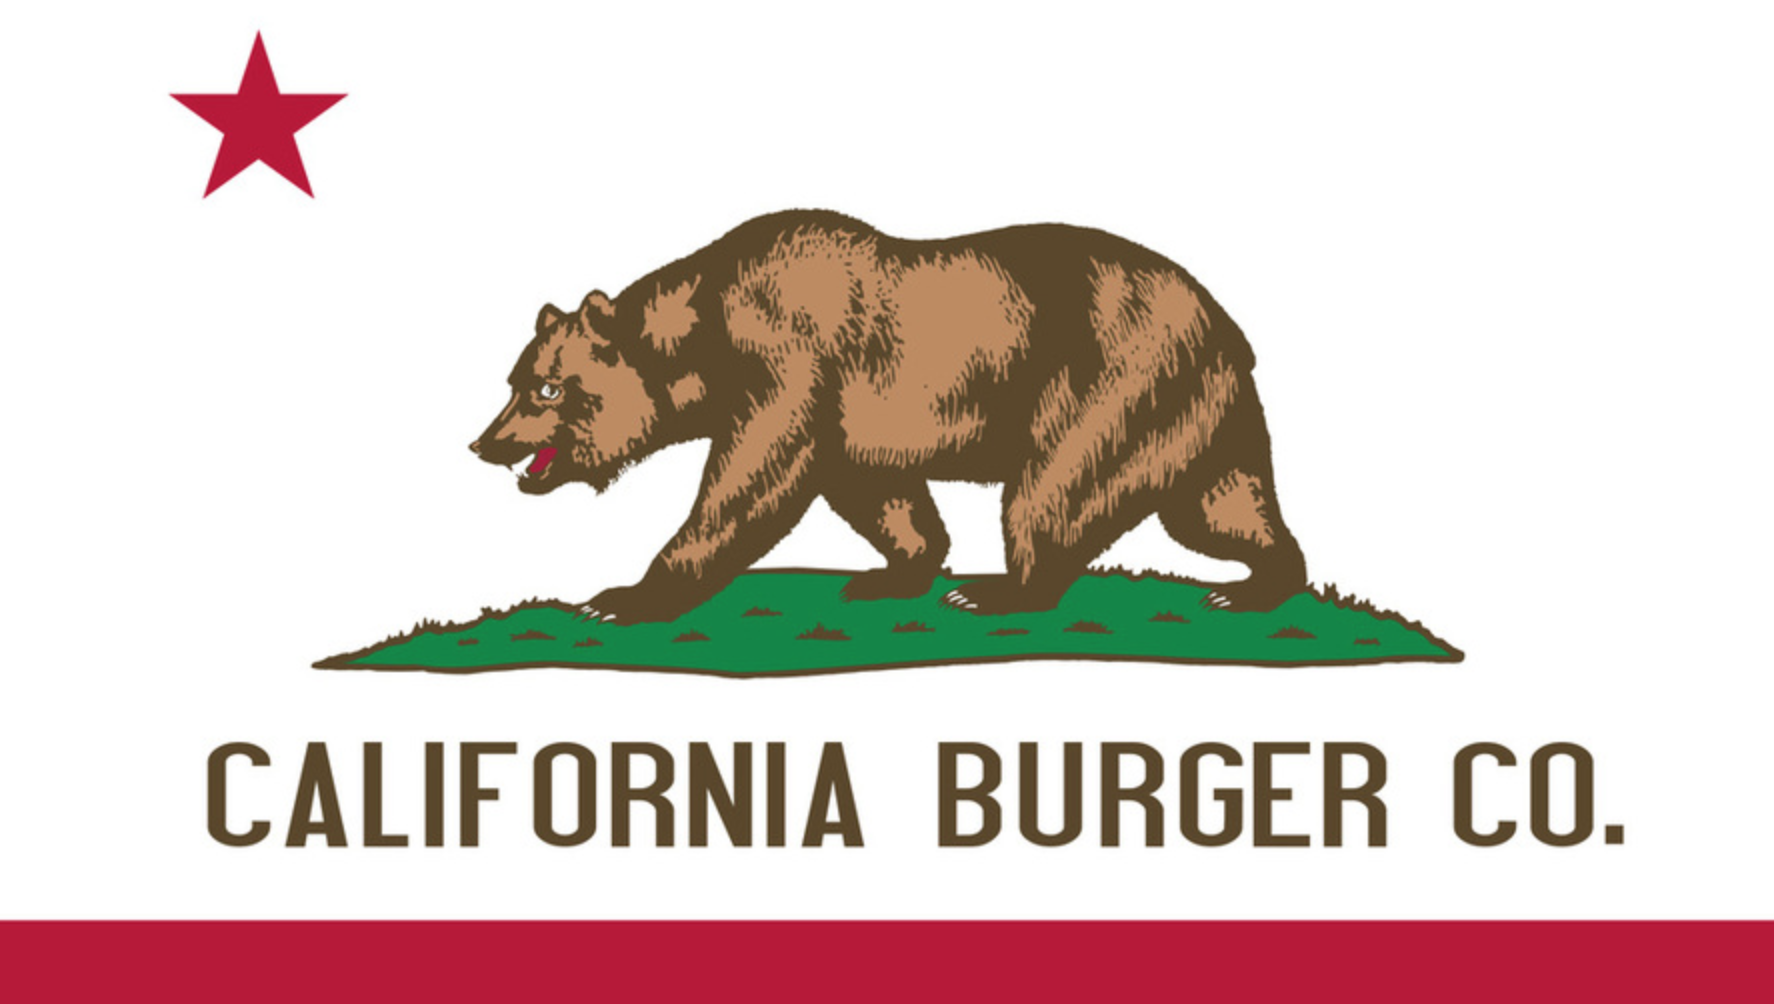 California Burger Logo Based Loosely on the California Flag